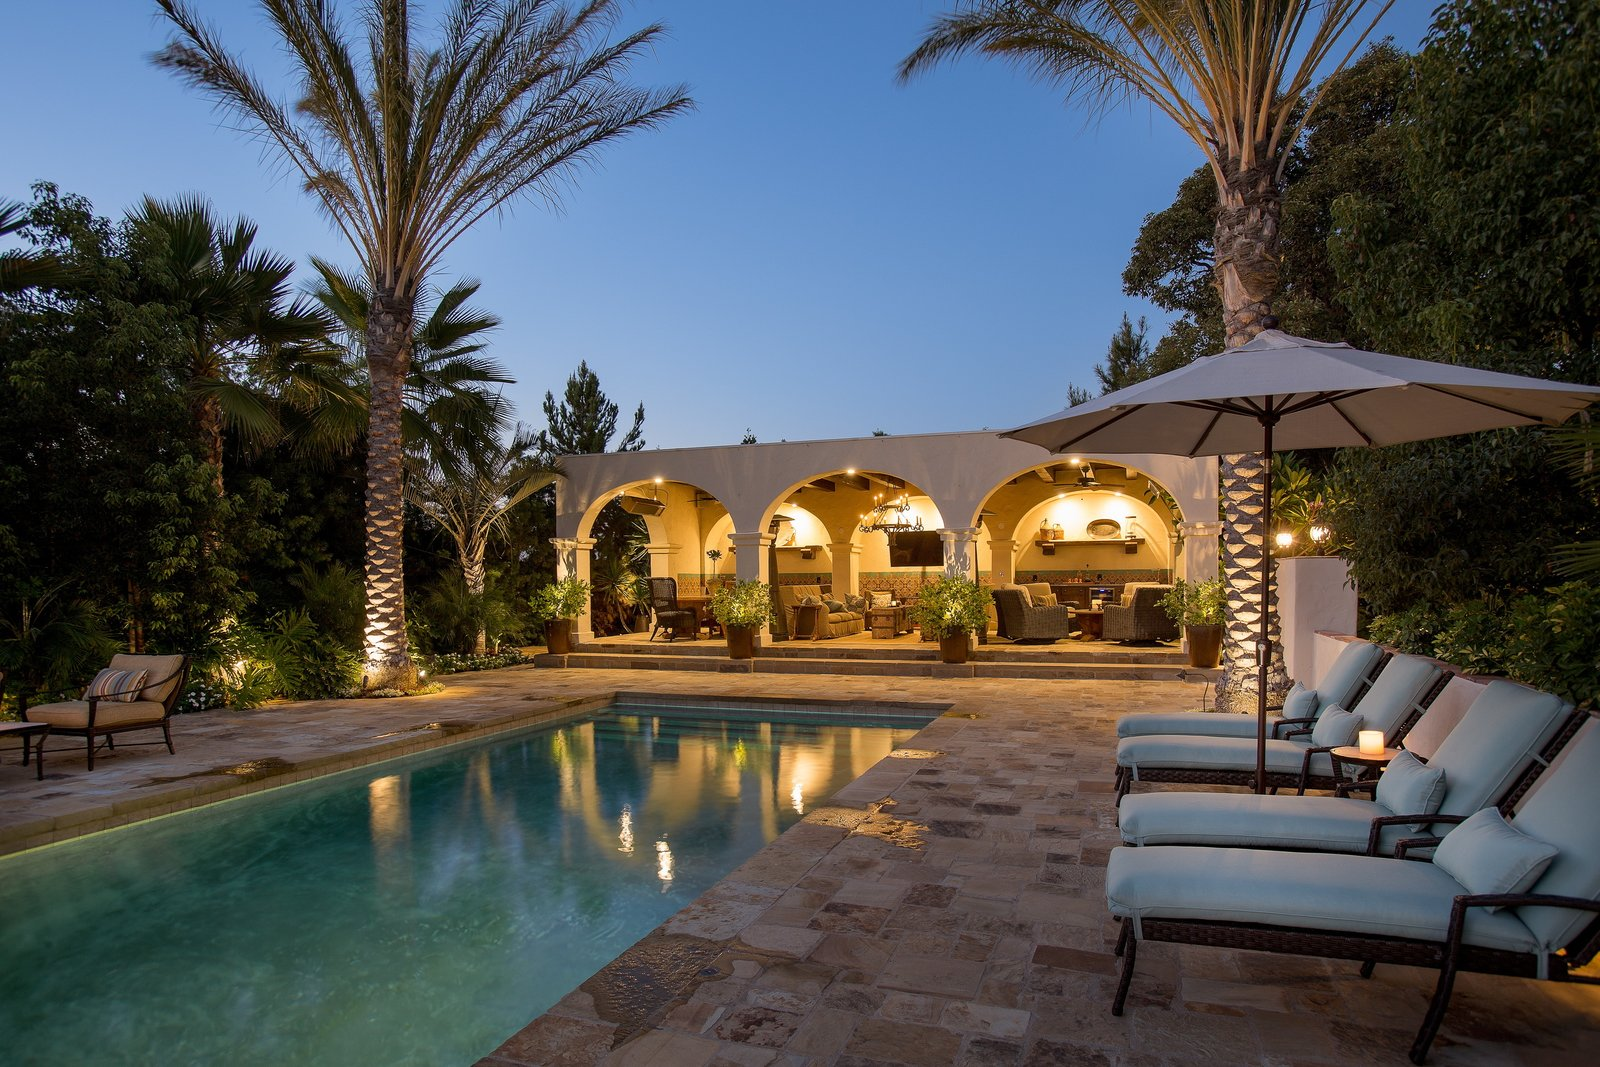 The most breathtaking features of Casa Comodoro are the custom pool and loggia area designed by Marc Appleton and Paul Williger. The architects have truly mastered the integration of the original architecture with modern updates and have created a space perfect for enjoying Southern Californian outdoor entertaining.  Photo 8 of 9 in Just Listed at $4M, This Spanish Colonial Revival in Southern California Promises Resort-Like Living